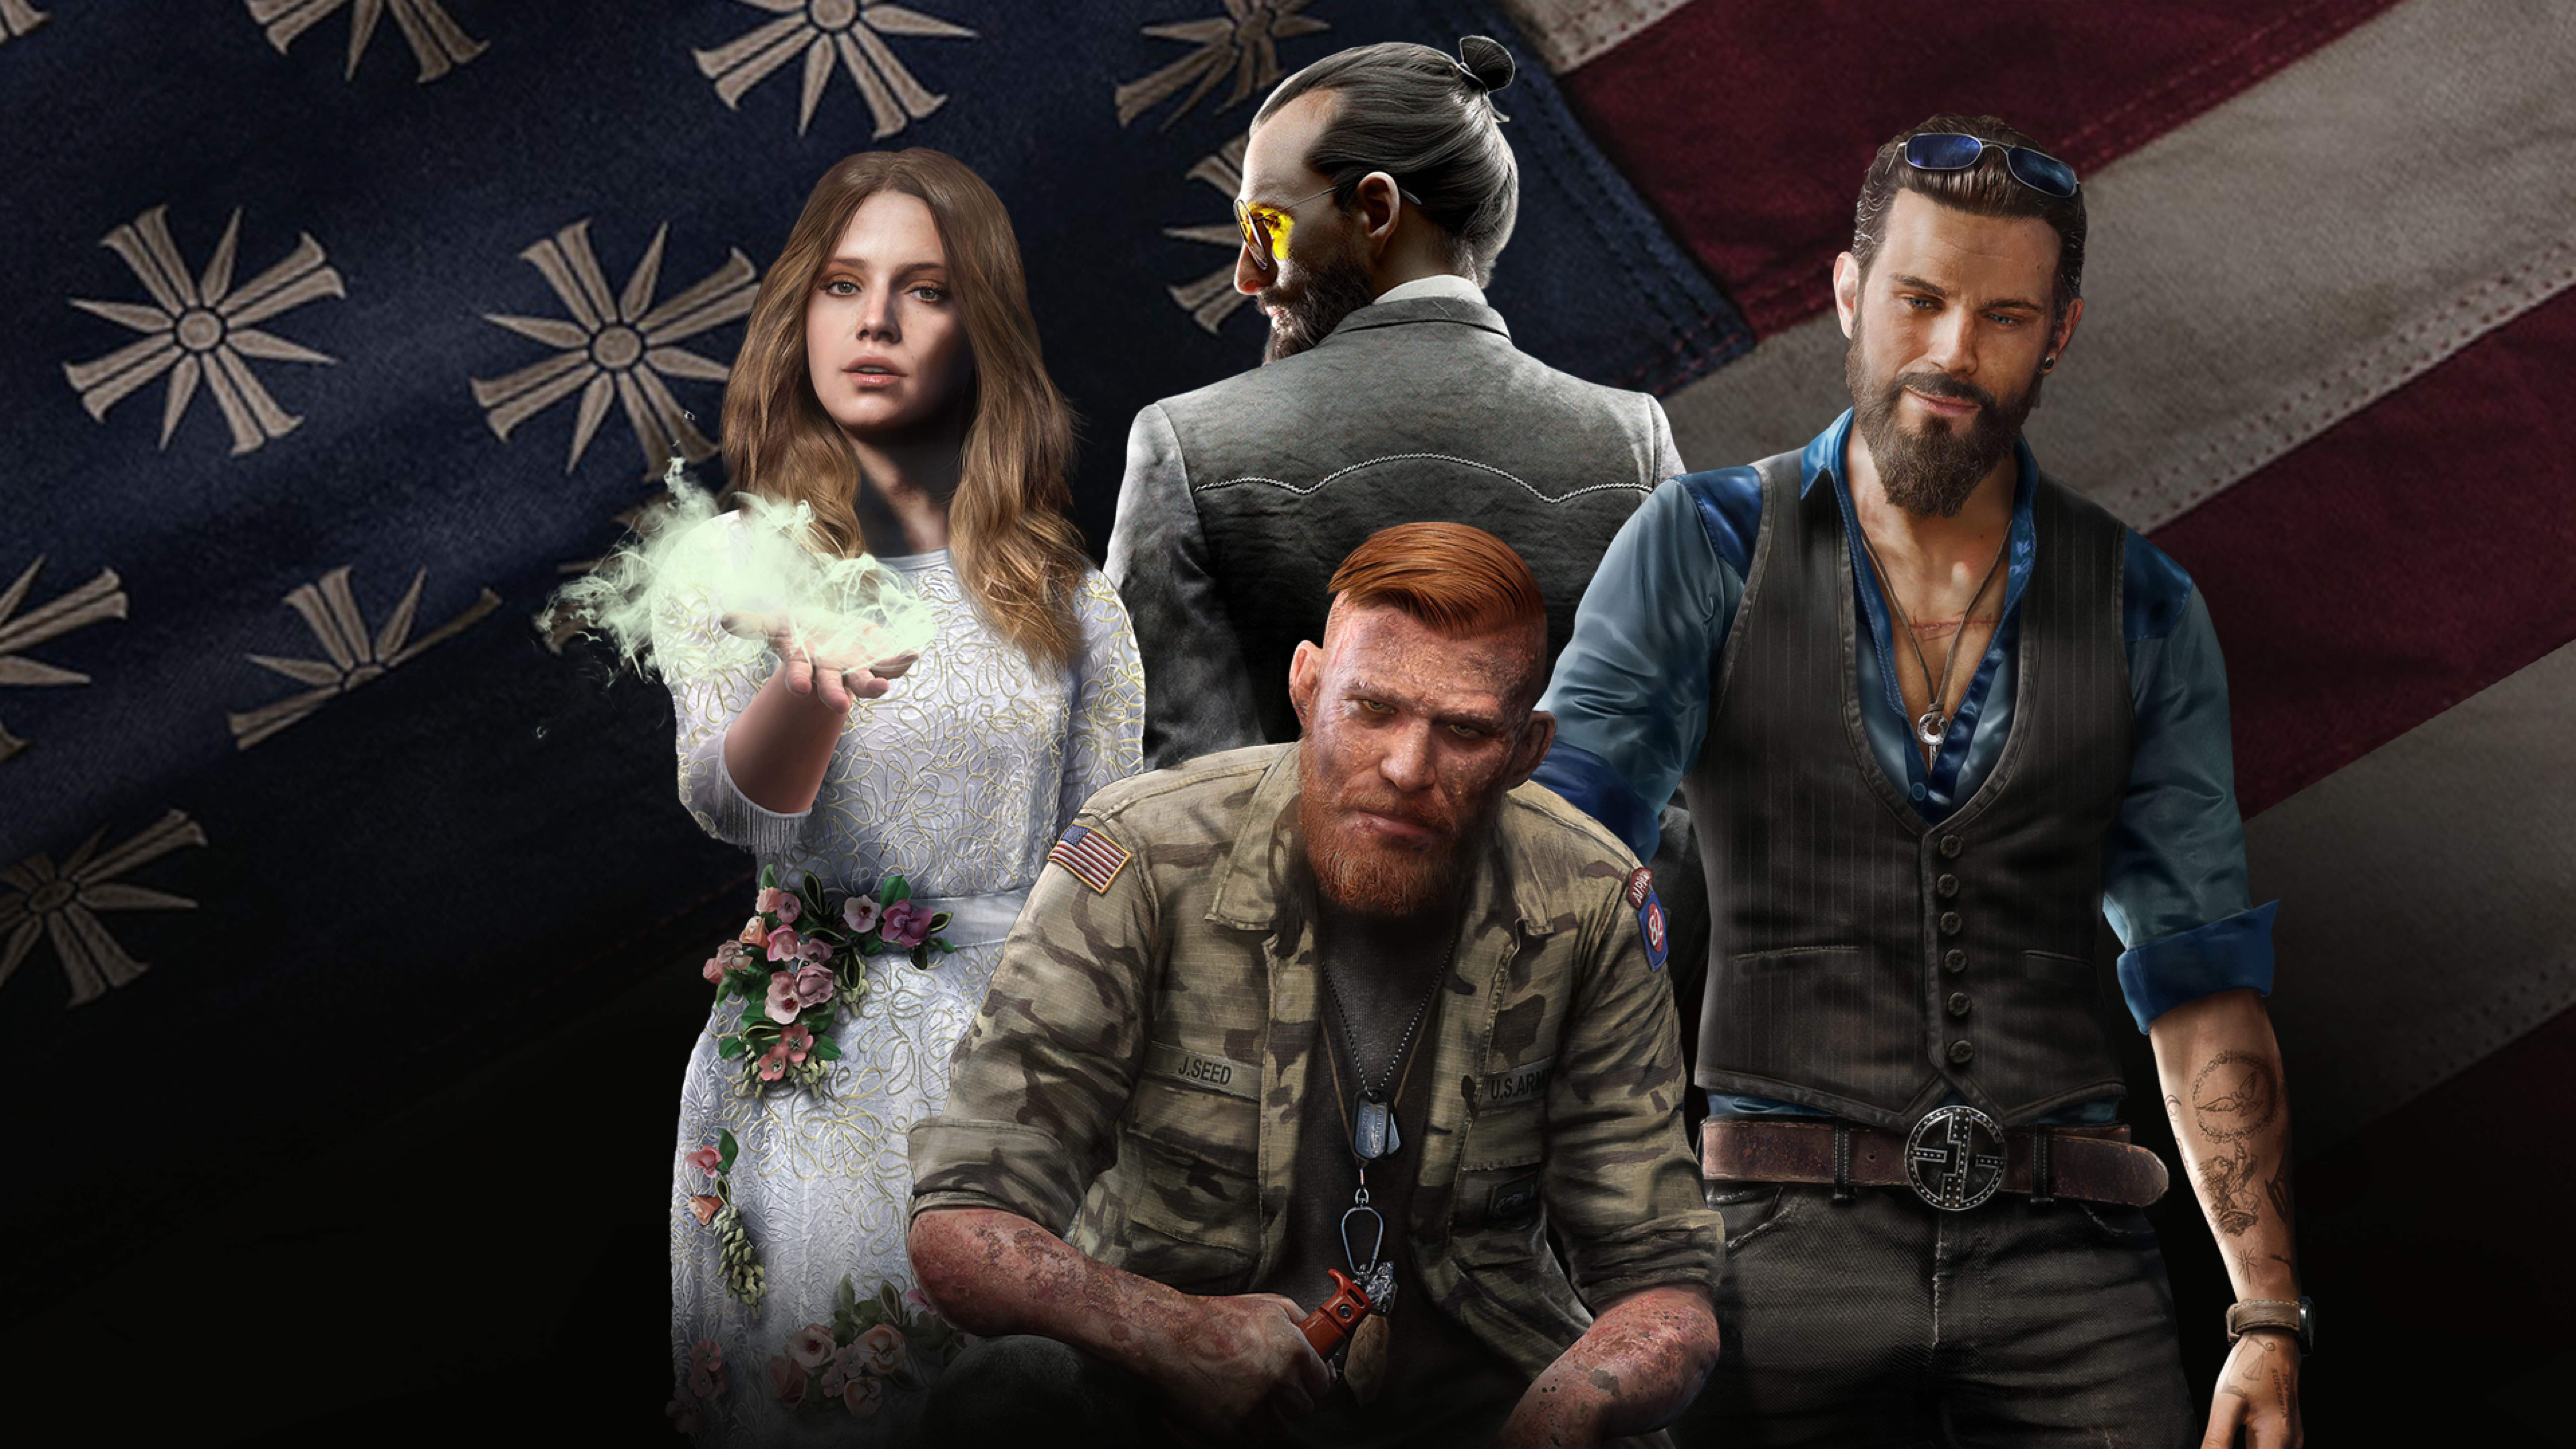 Far Cry 5 Wallpaper 4k: 7680x4320 Far Cry 5 8k 2018 8k HD 4k Wallpapers, Images